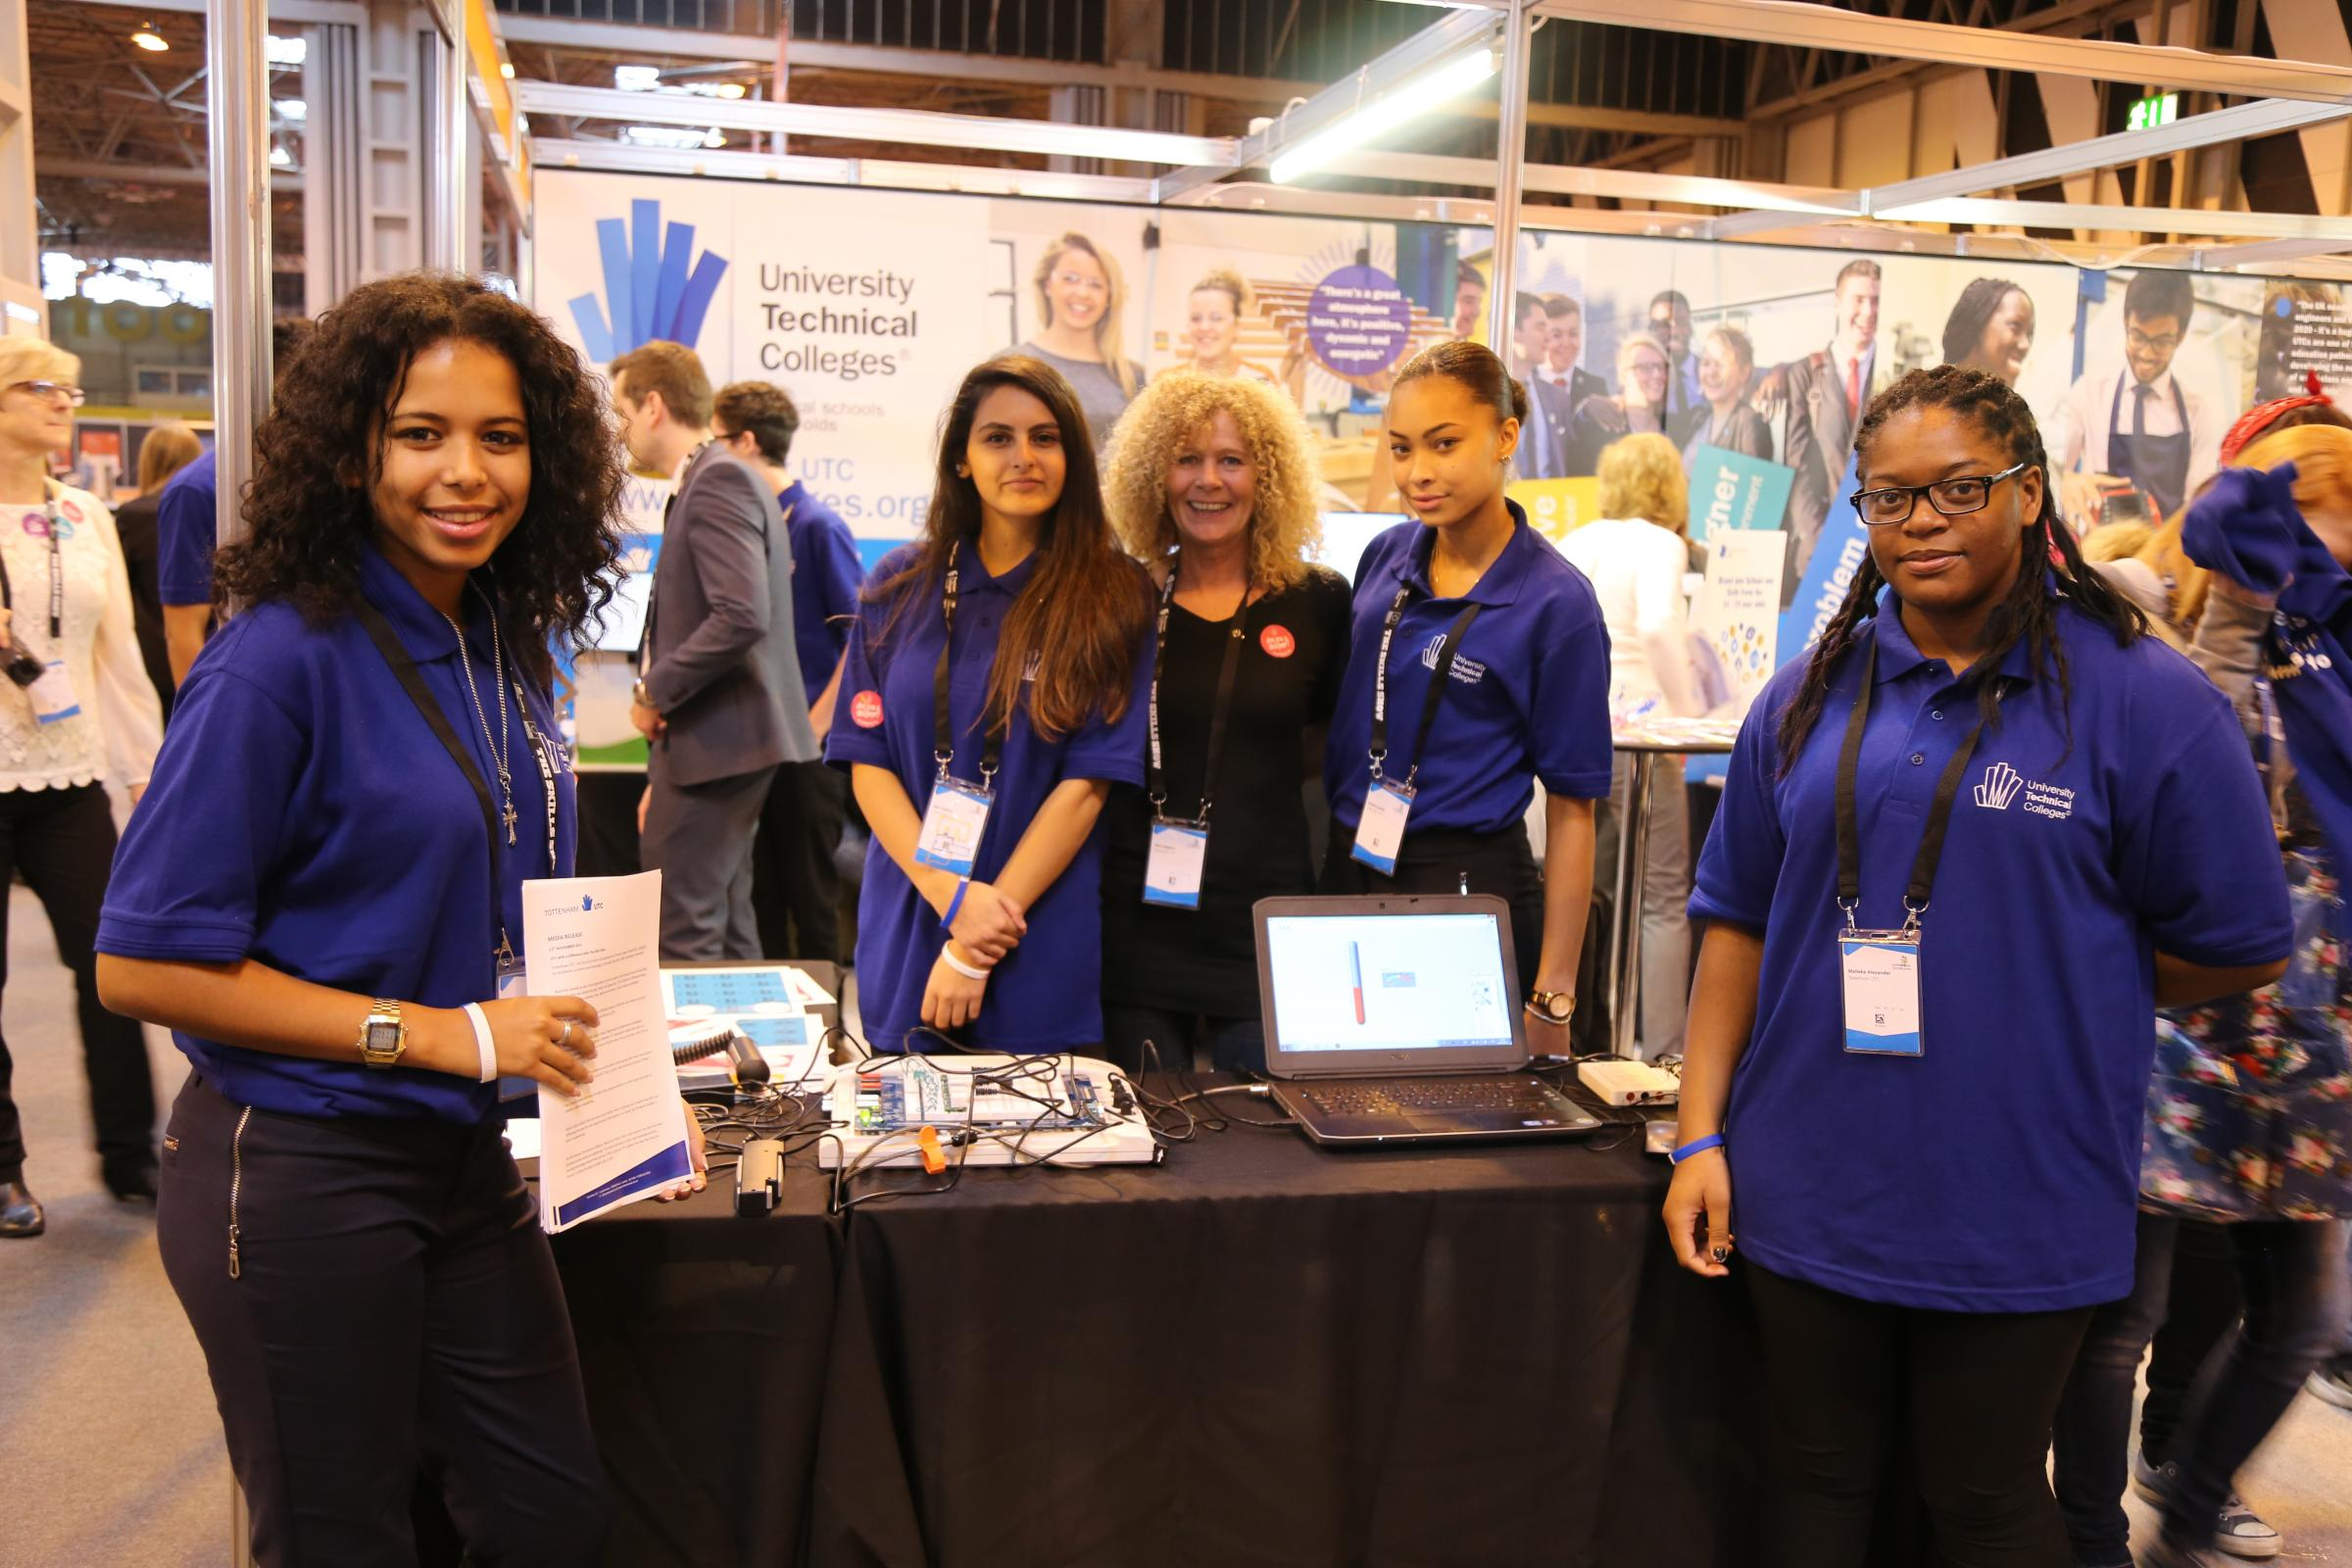 Spurs college students show skills at careers fair